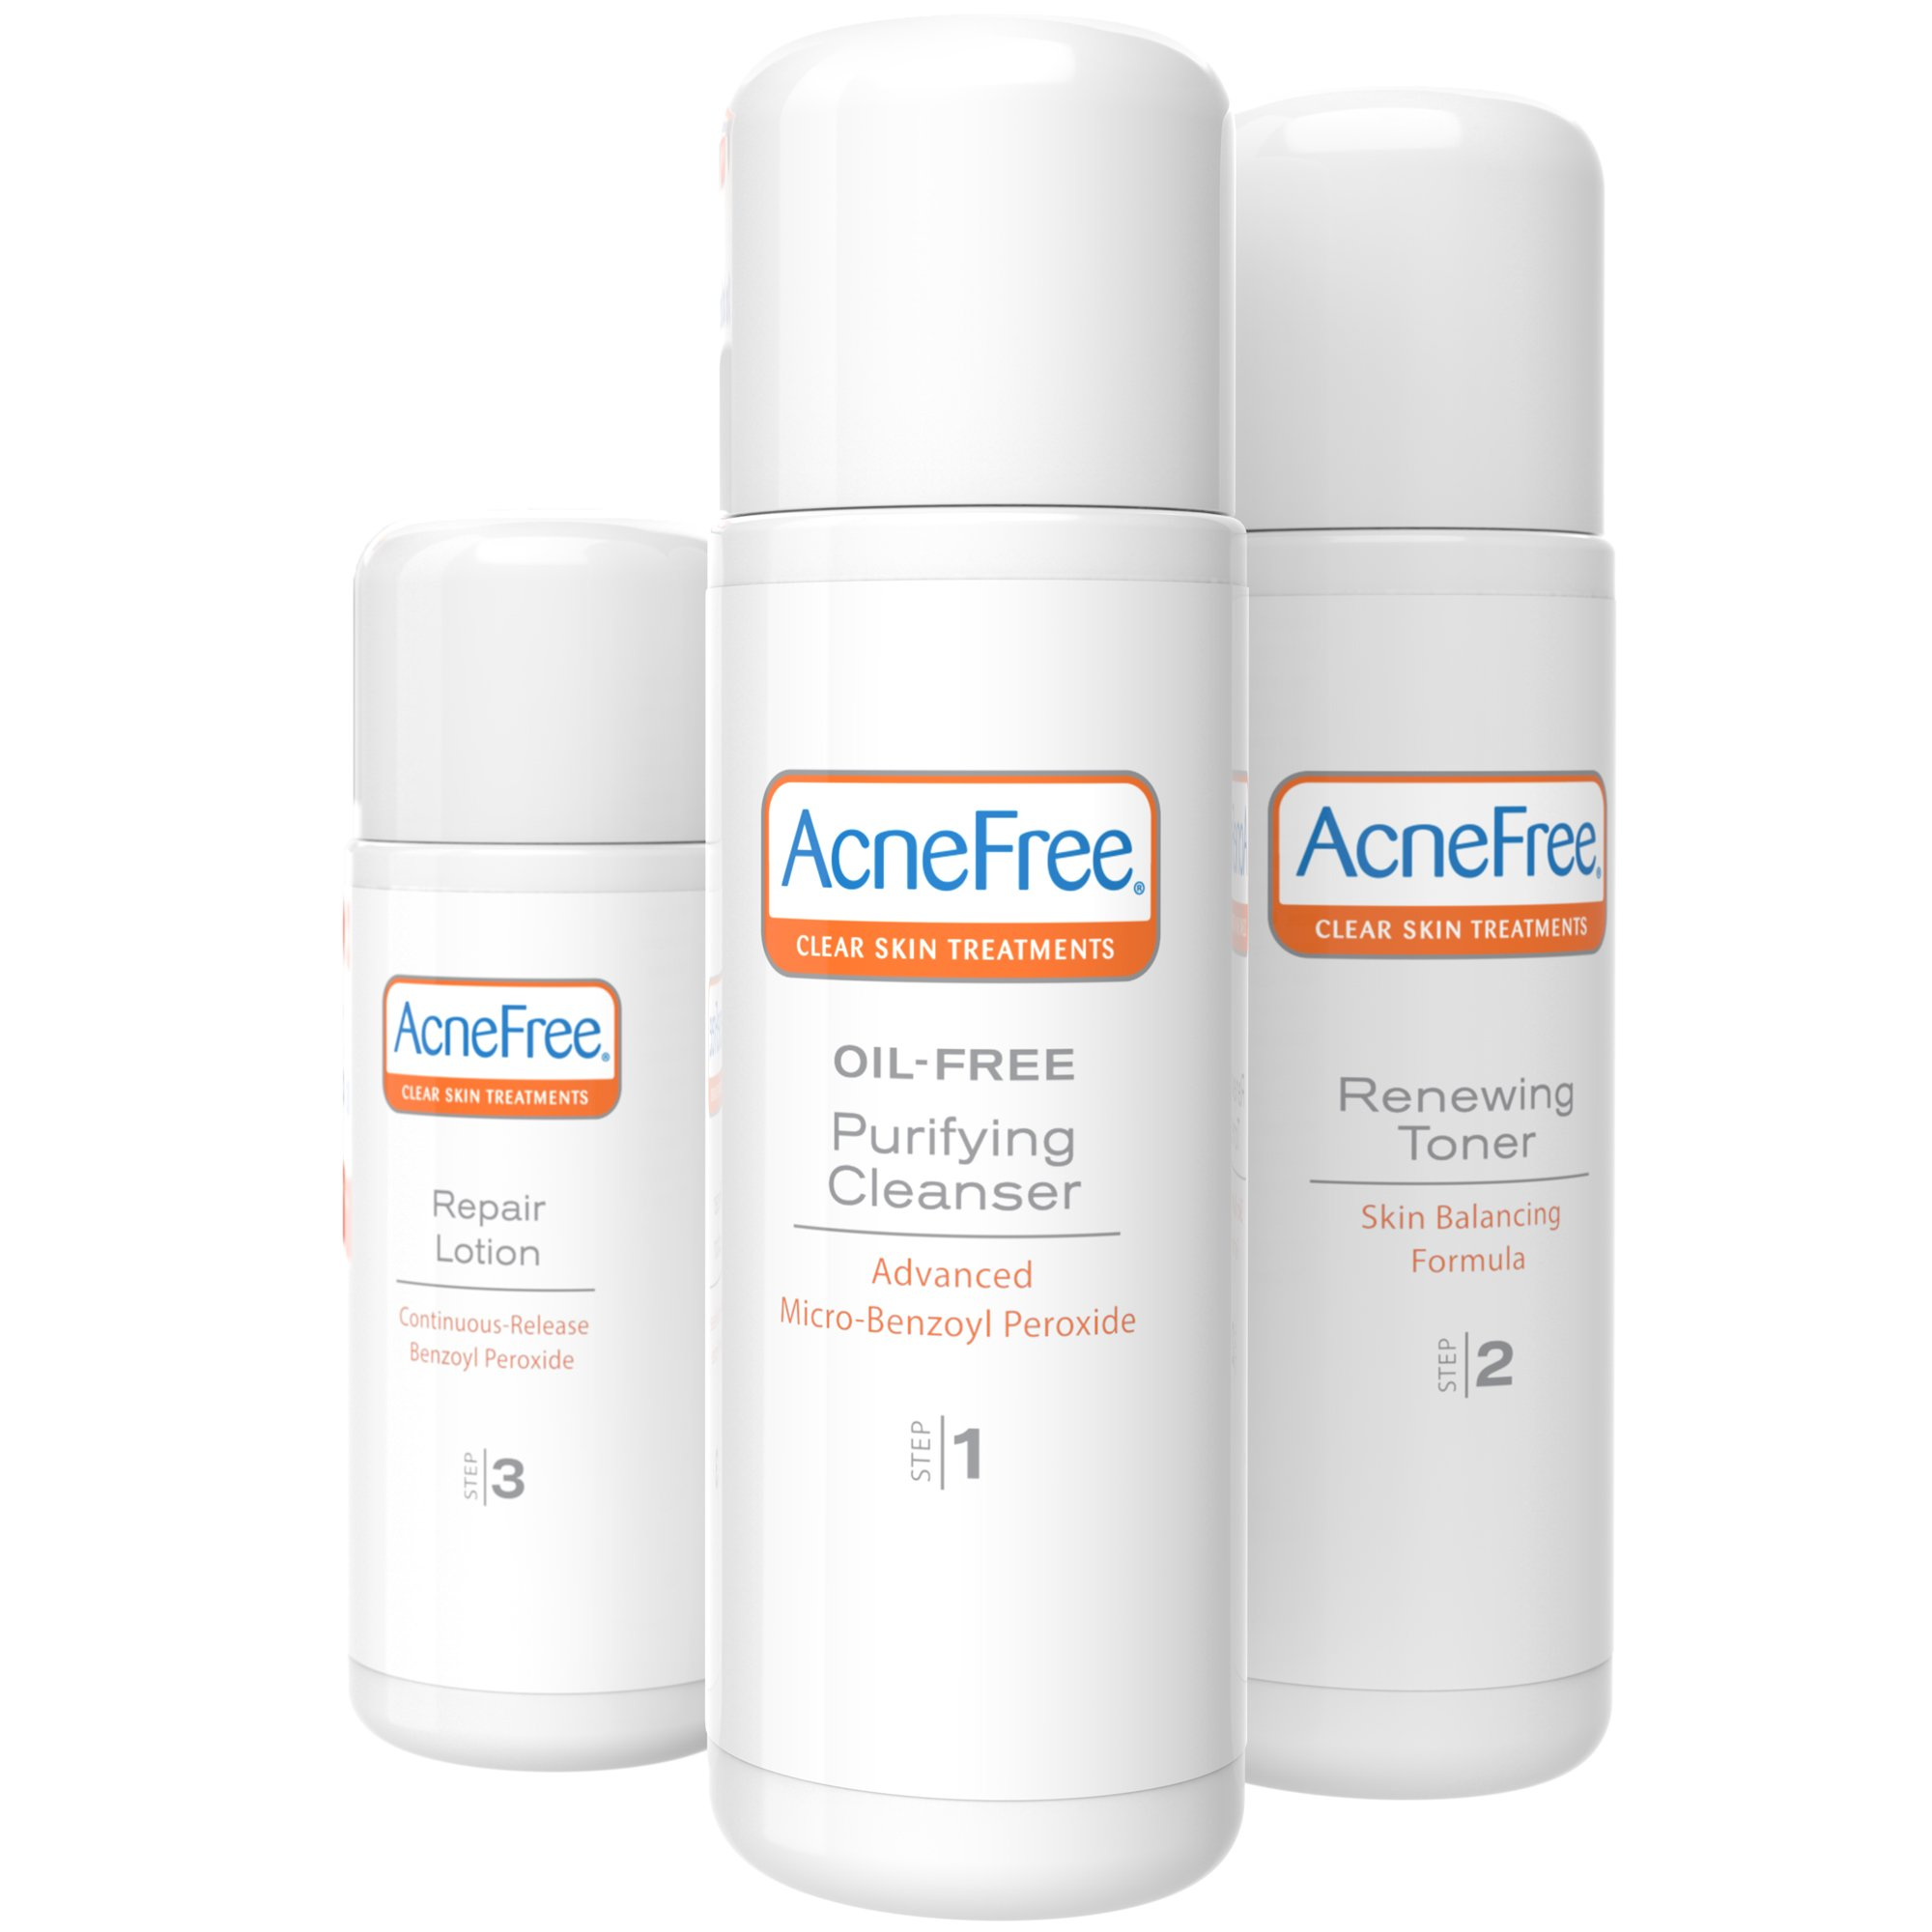 AcneFree 3 Step 24 Hour Acne Treatment Kit Clearing System w Oil Free Face Wash